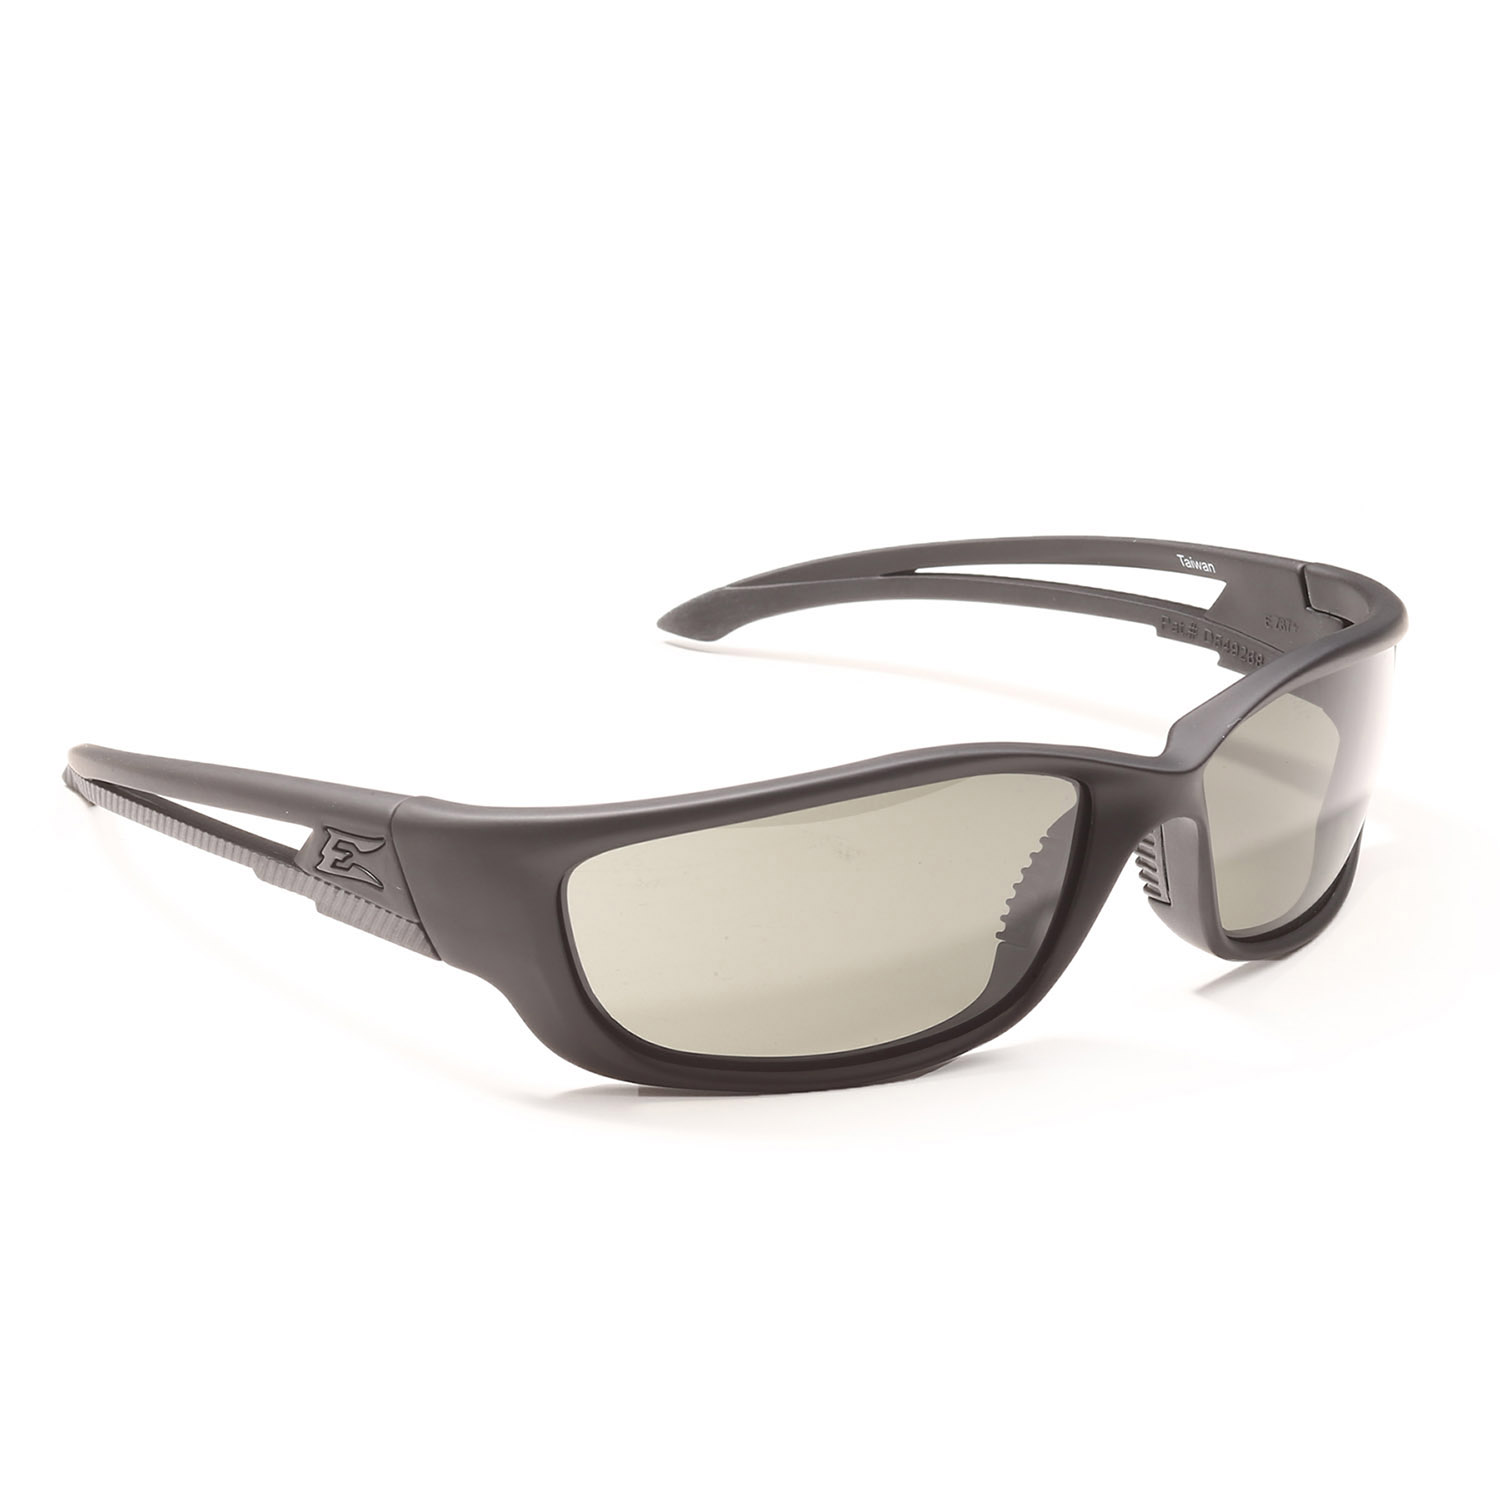 Edge Eyewear Blade Runner XL with Smoke Polarized Gradient